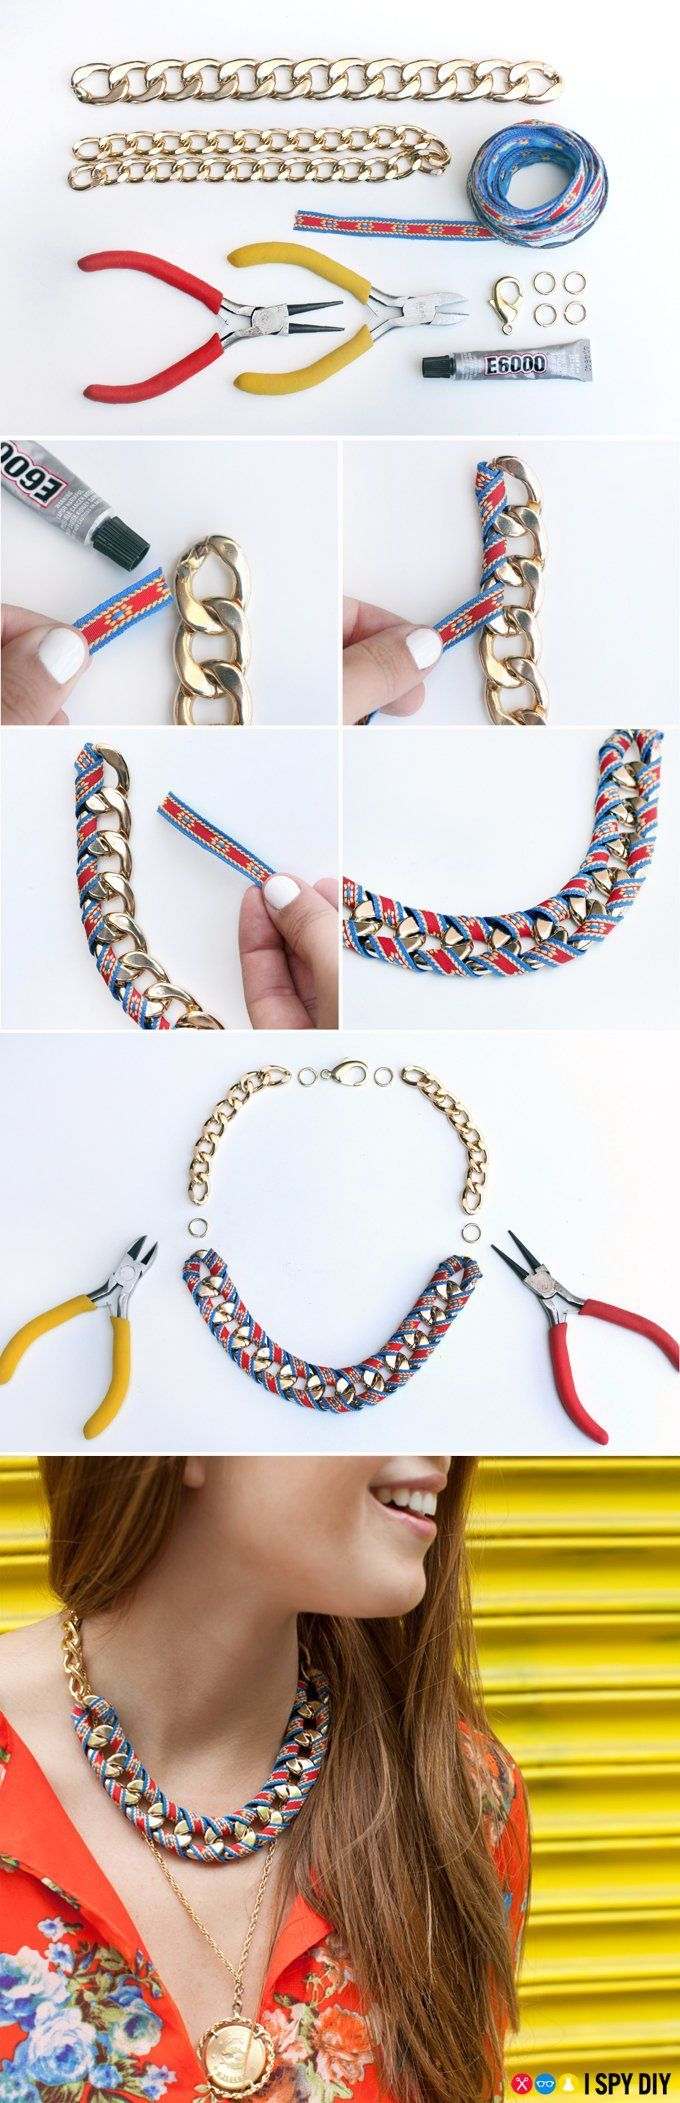 diy necklace jewelry tutorial craft ideas1